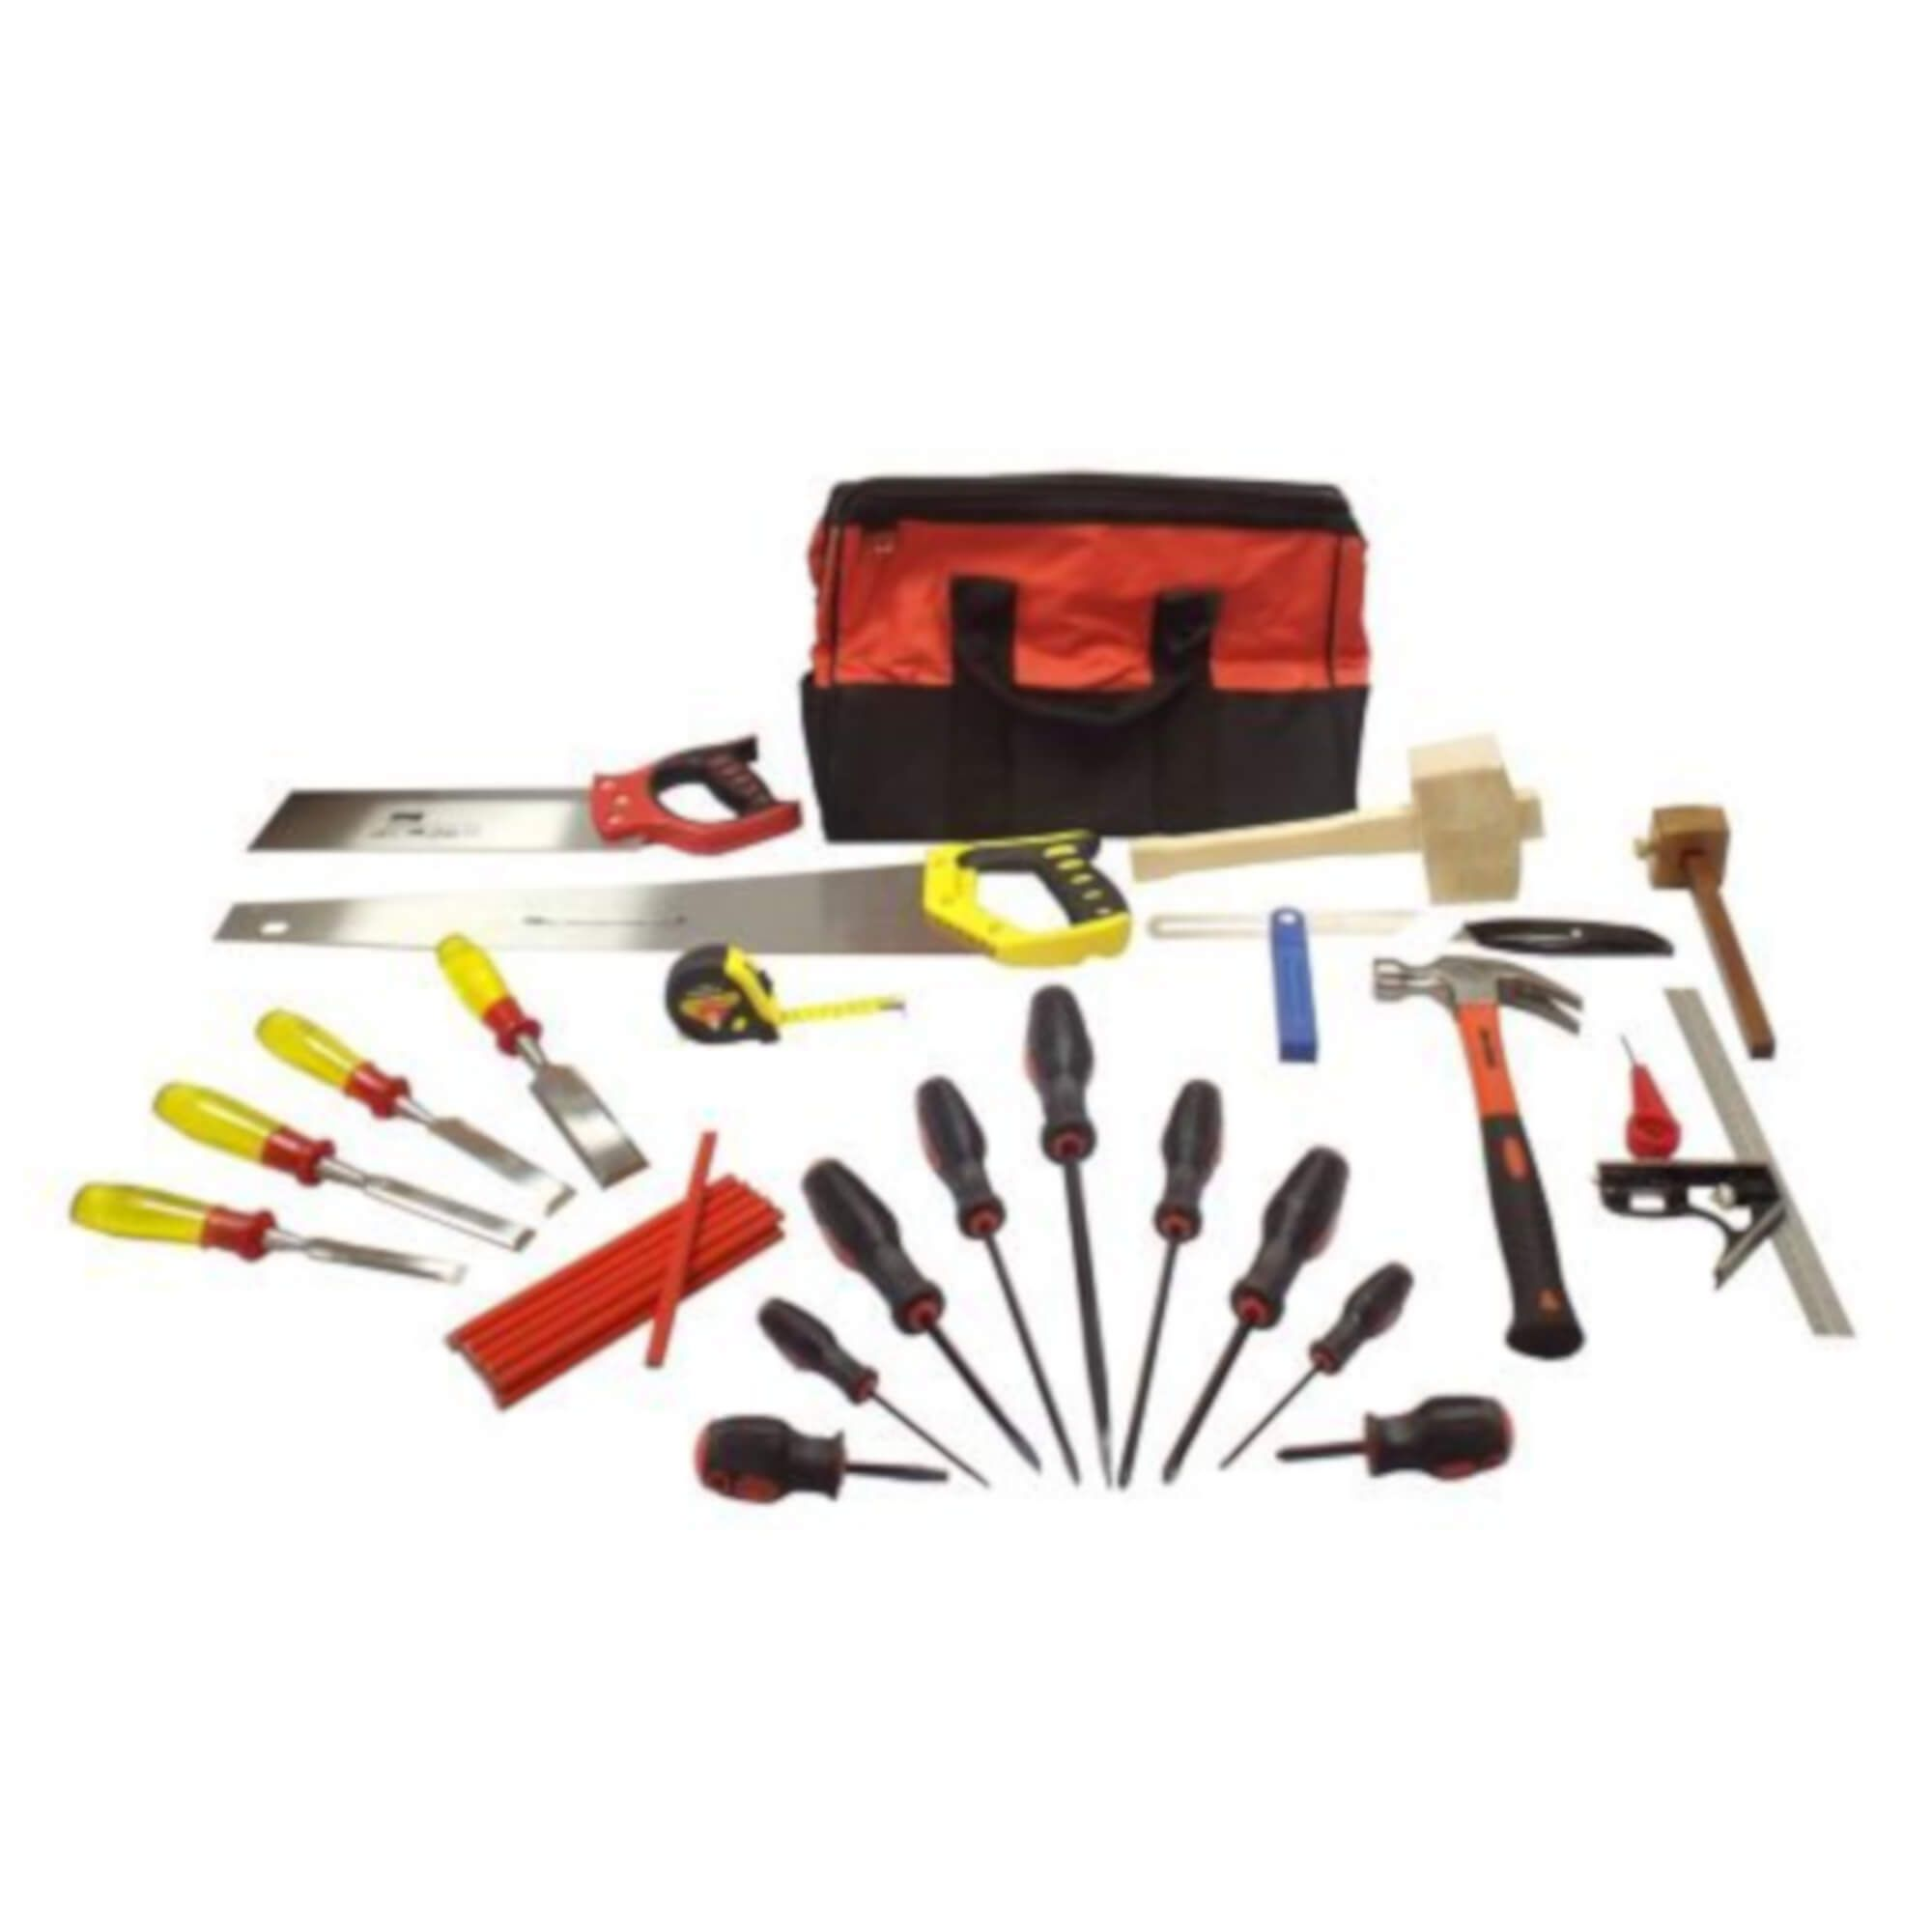 14pc Joinery Starter Tool Kit Apprentice Carpentry Woodworking Tools Set